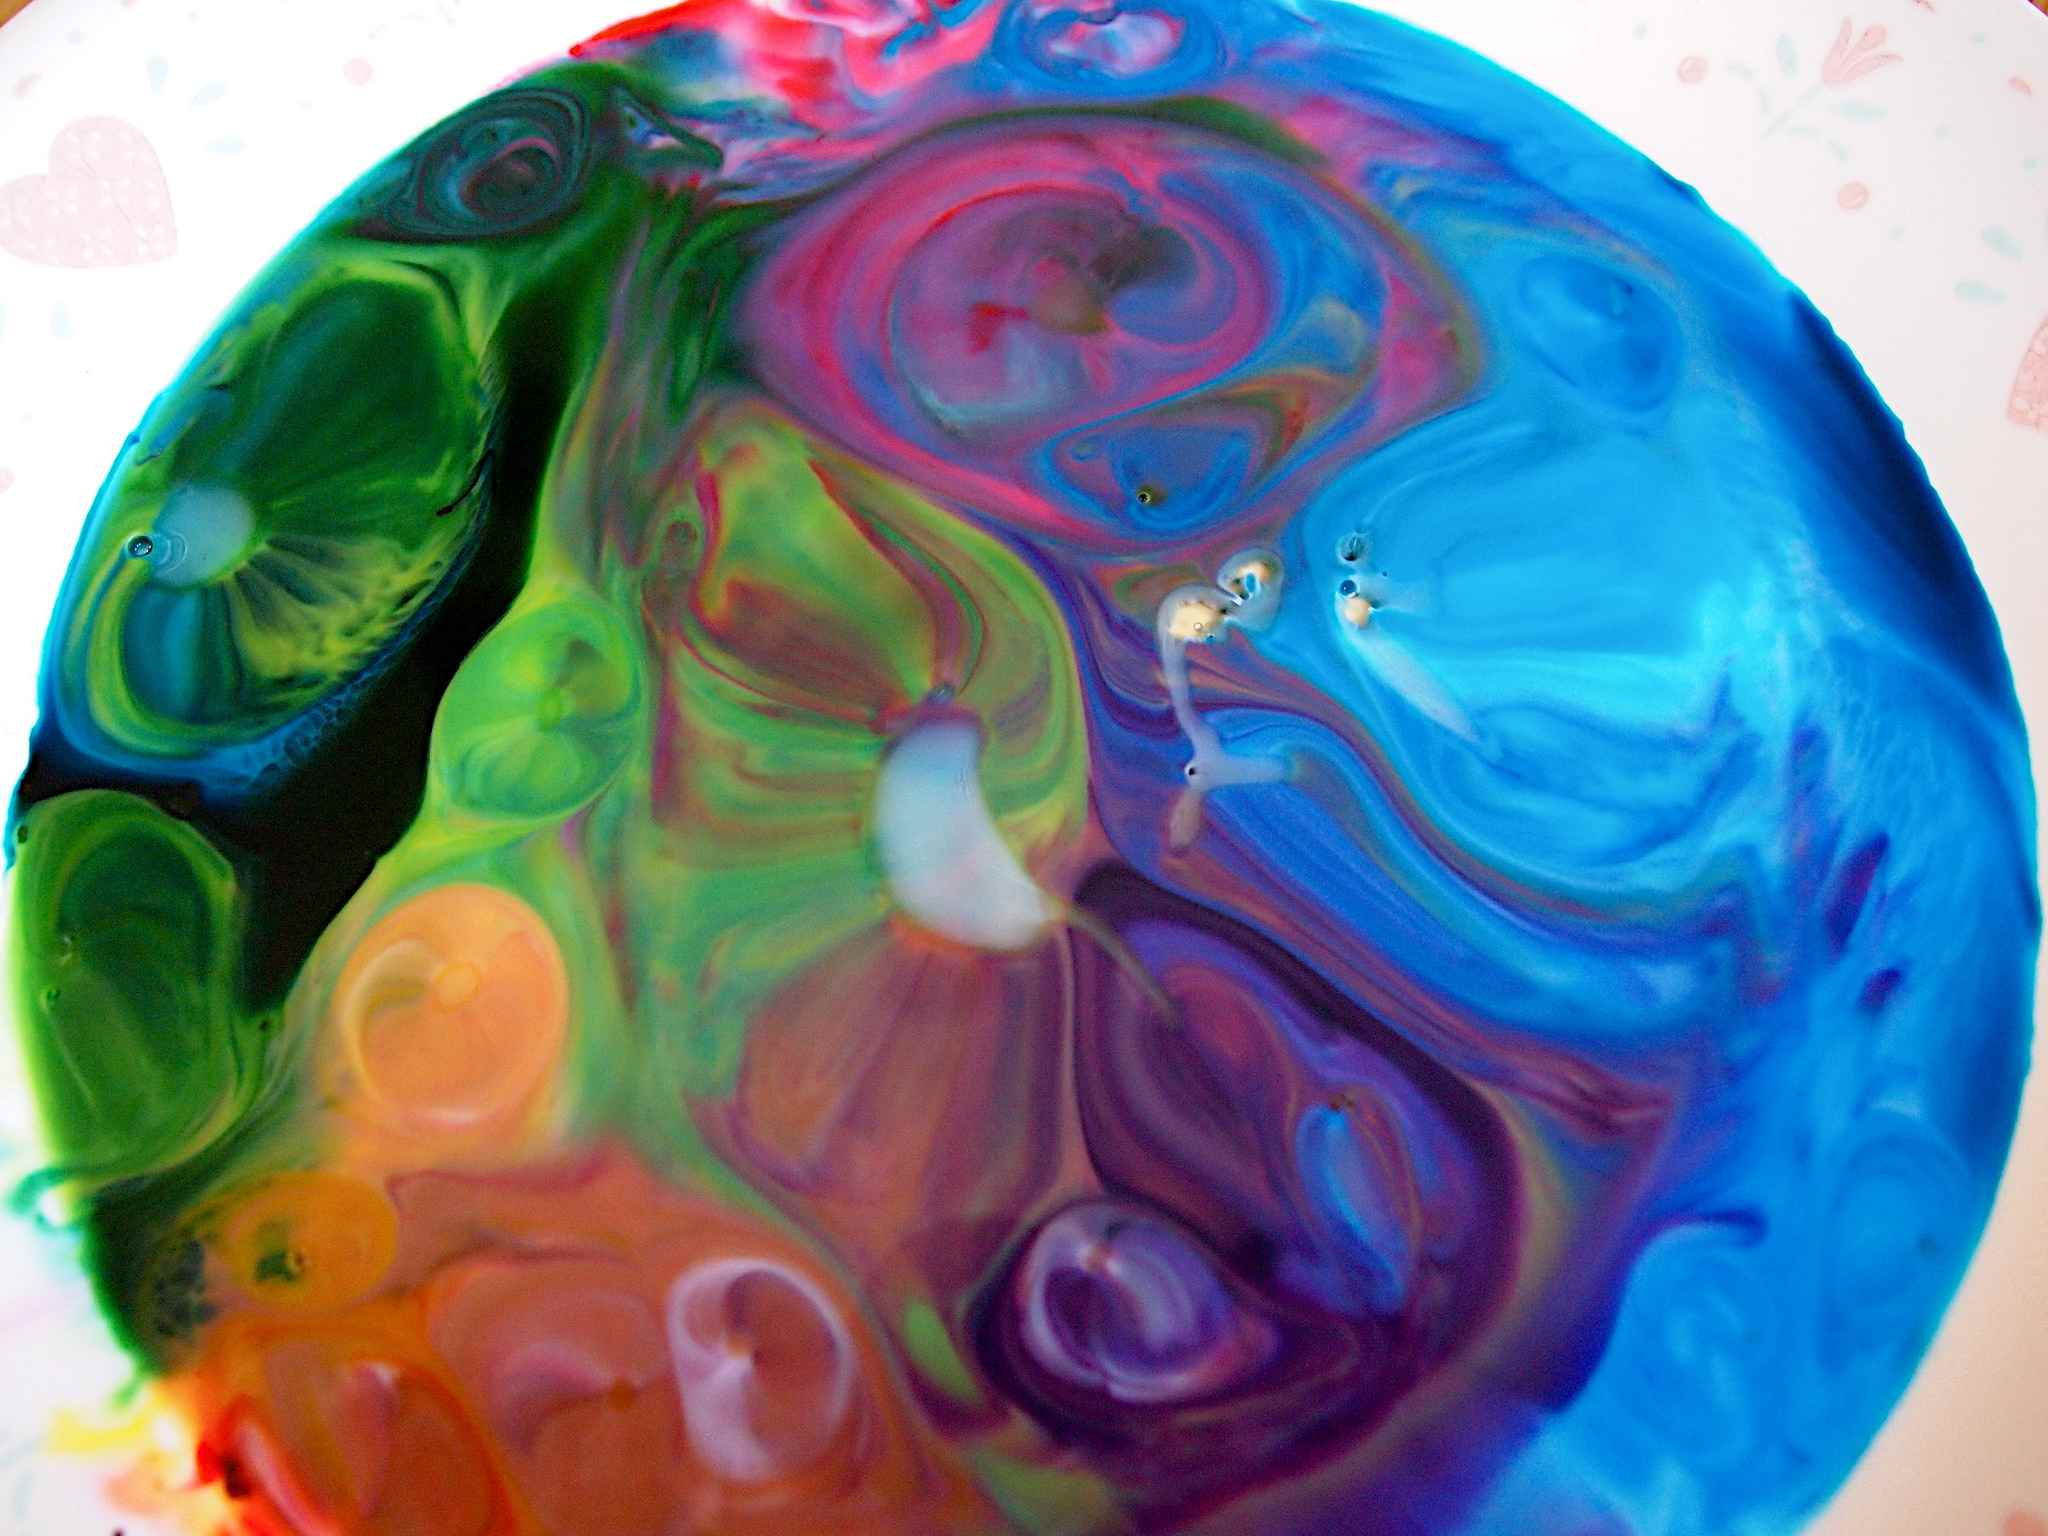 Milk, food coloring, and soap